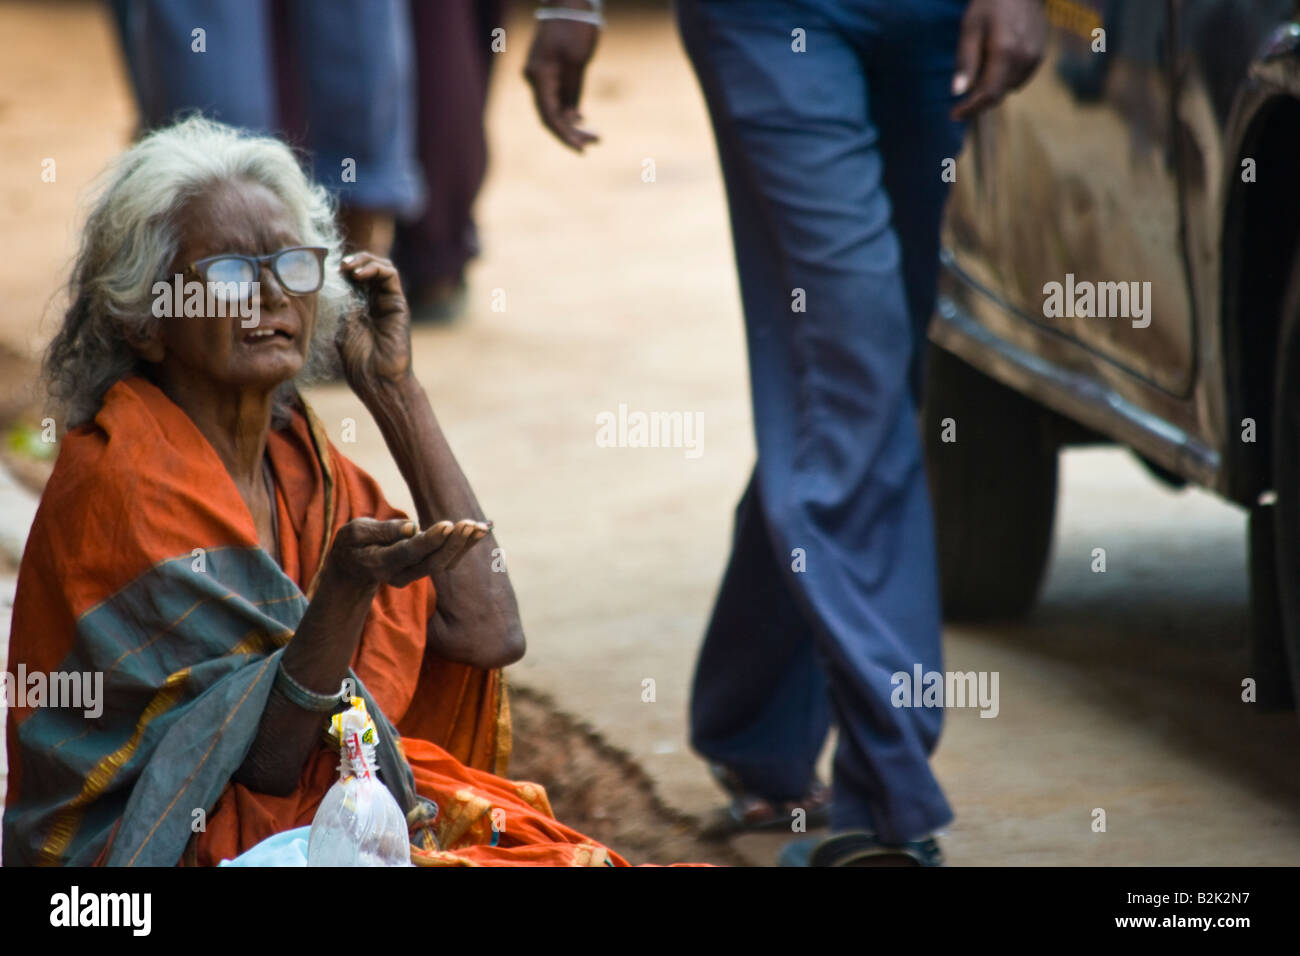 Old Homeless Woman Begging in the Streets of Mumbai India